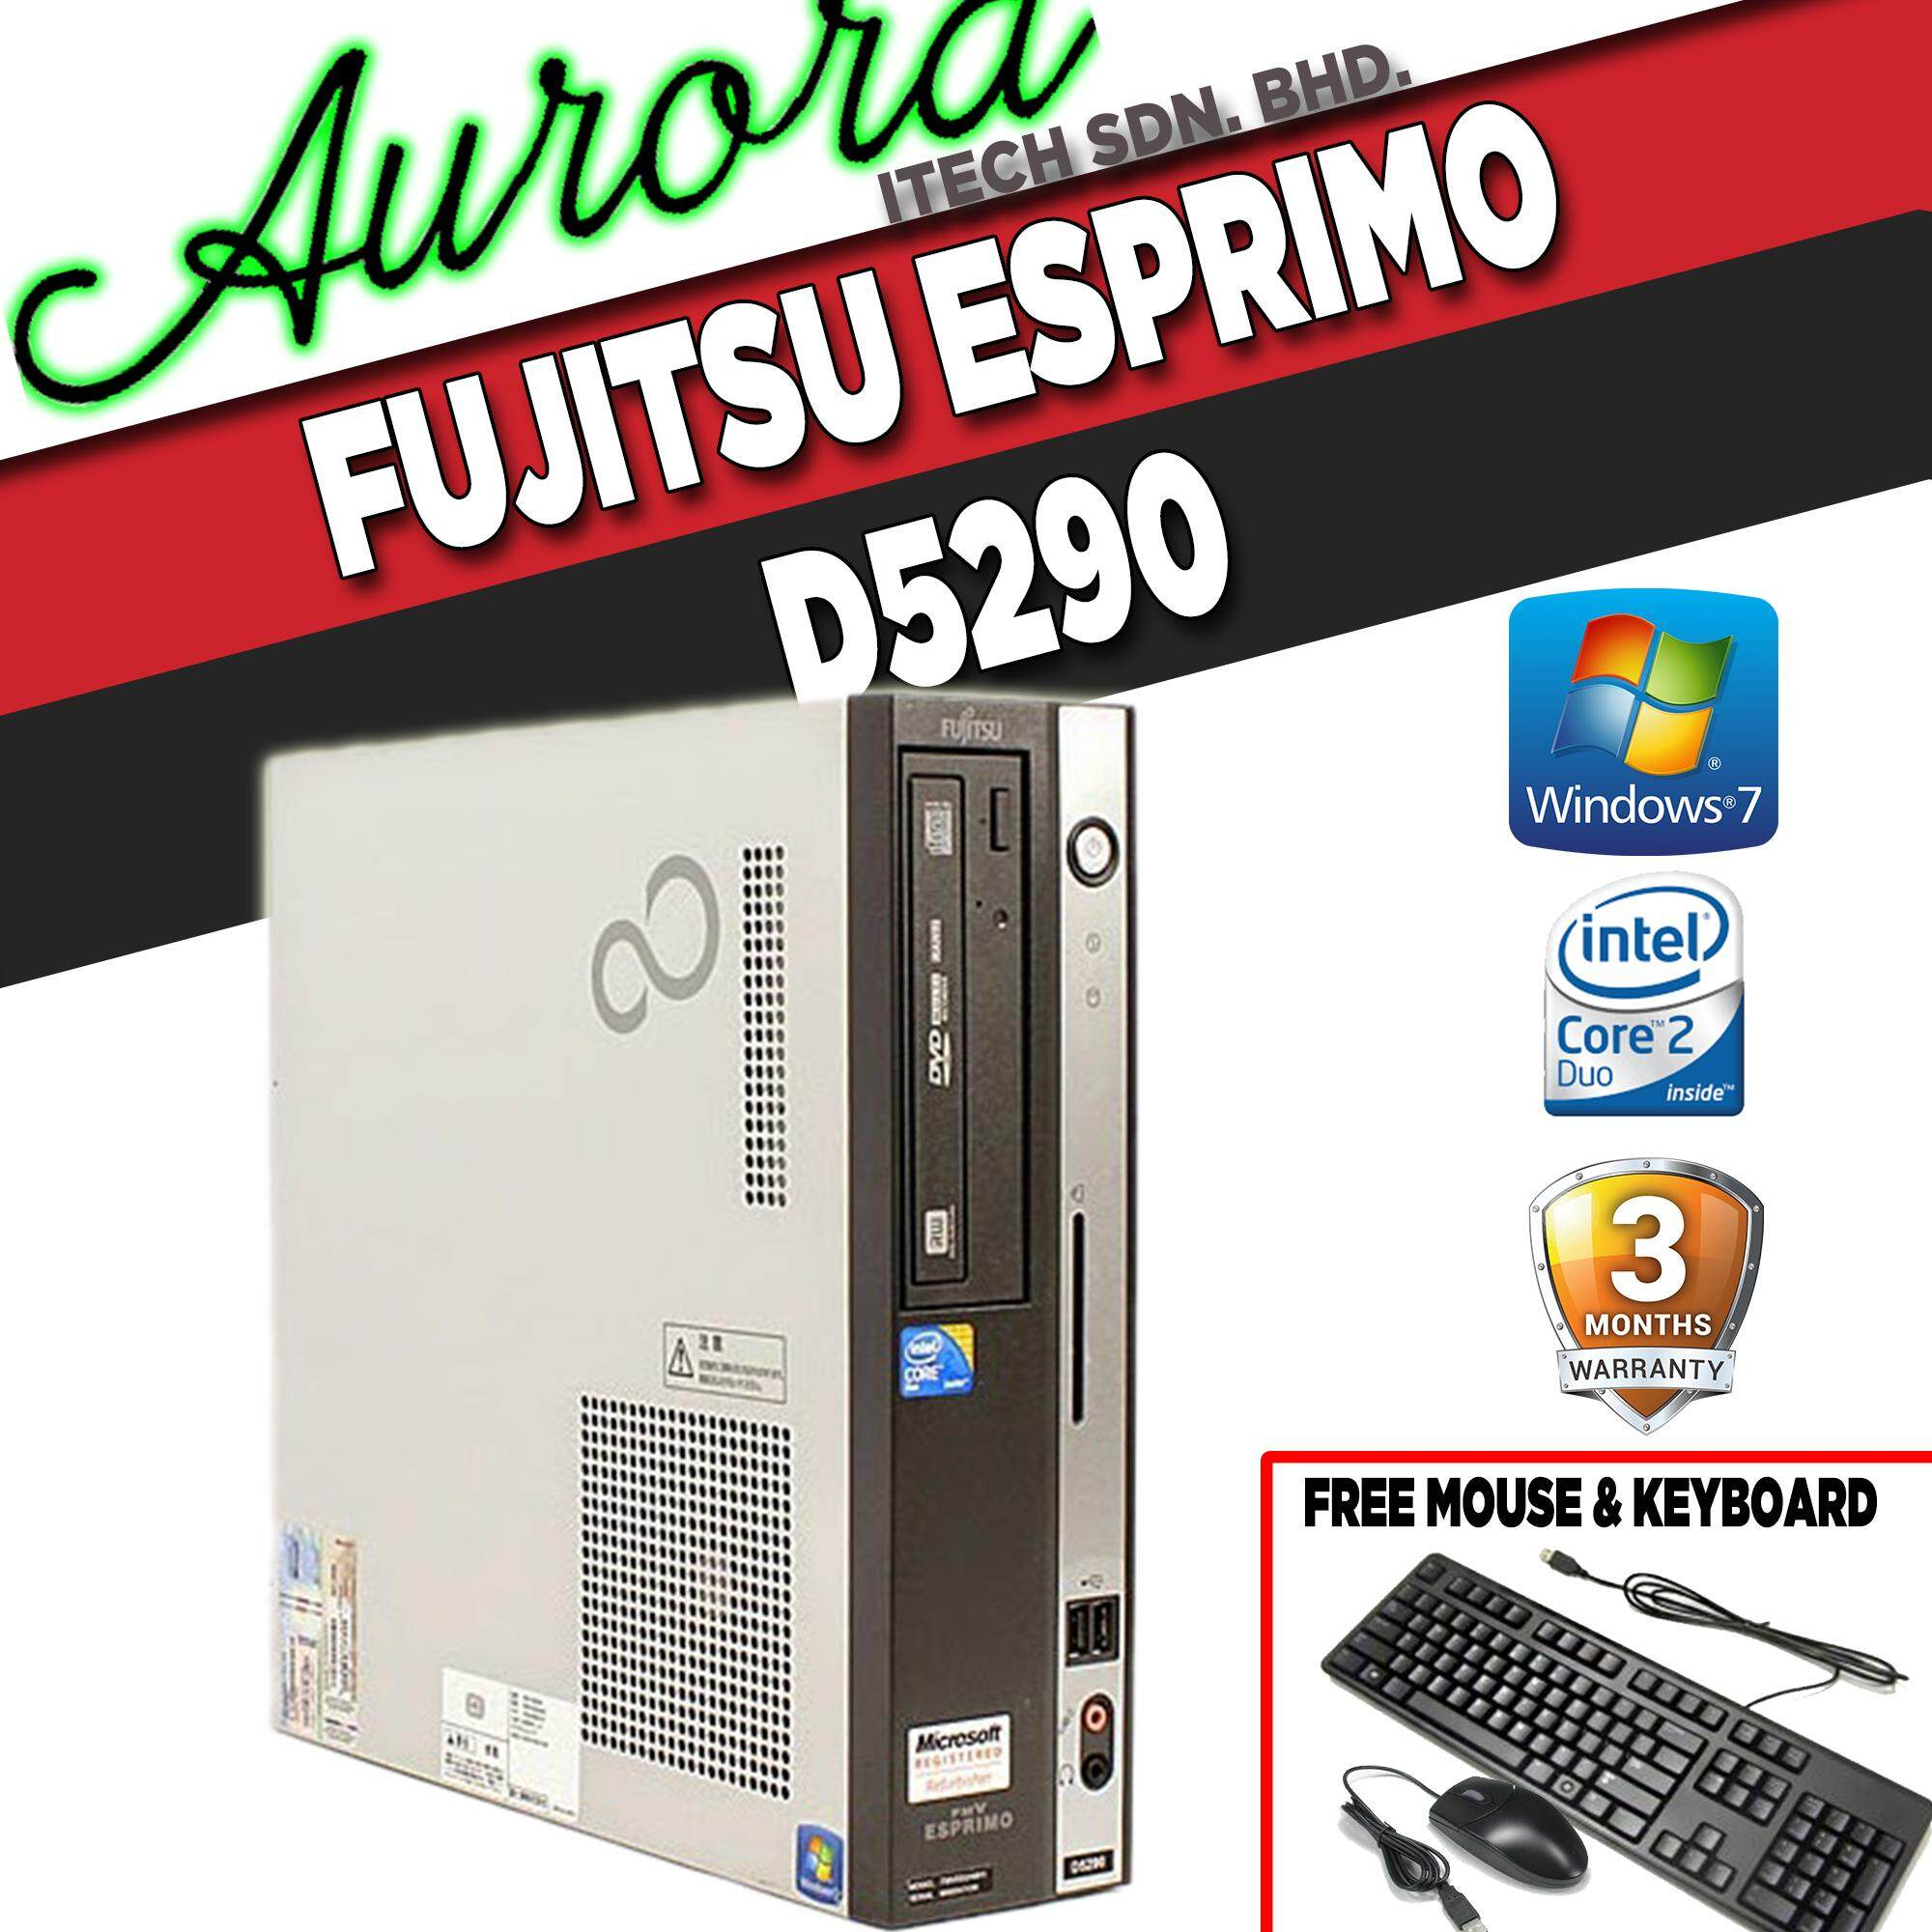 (refurbished) Fujitsu Esprimo D2590/ Intel Core 2 Duo E7400 2.80ghz / 2gb Ddr2 Ram / 80gb Hdd / 3 Month Warranty/ Free Mouse & Keyboard By Aurora Itech Sdn. Bhd..